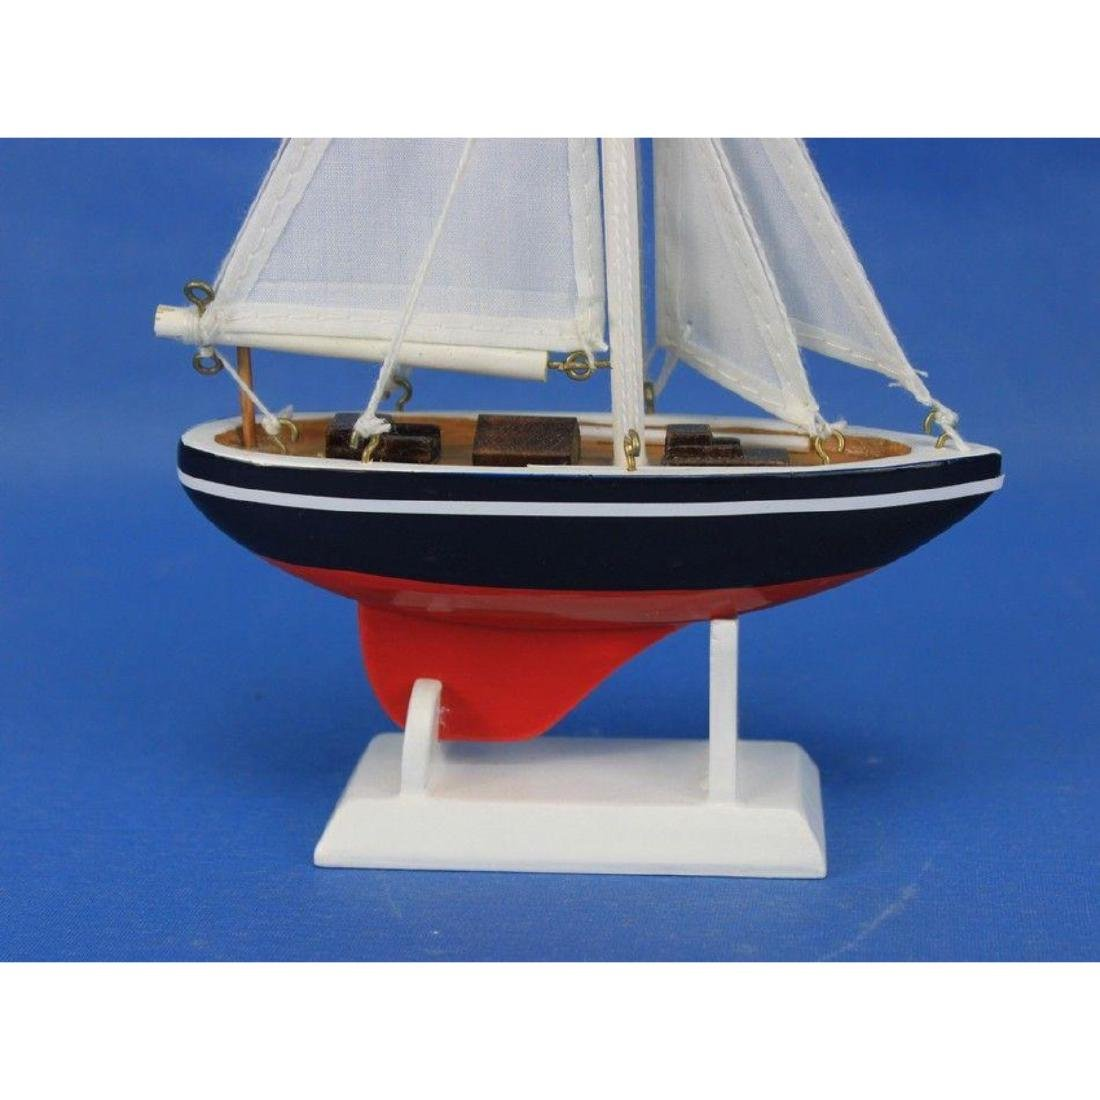 "Wooden American Sailer Model Sailboat Decoration 9"" - 7"